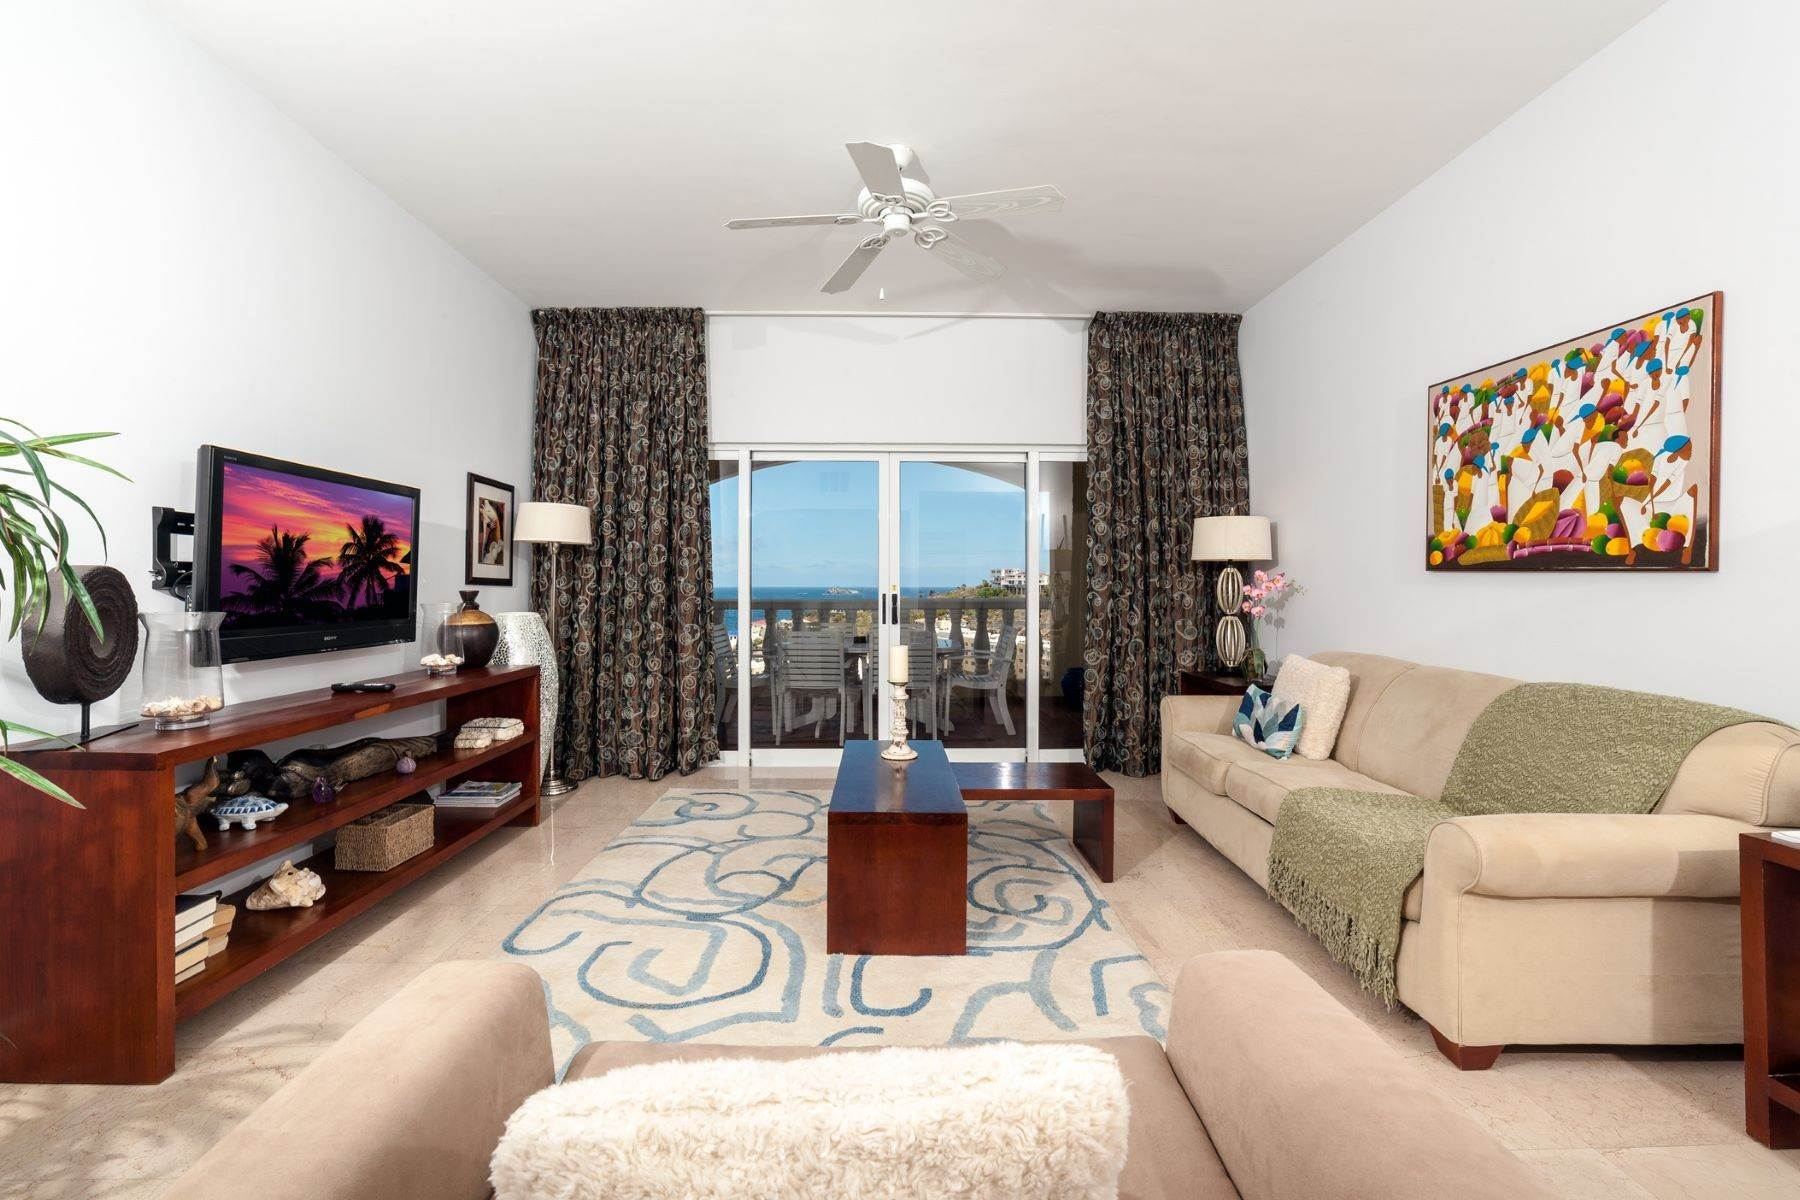 3. Condominiums for Sale at Princess Heights MoonStone Apartment Oyster Pond, St. Maarten